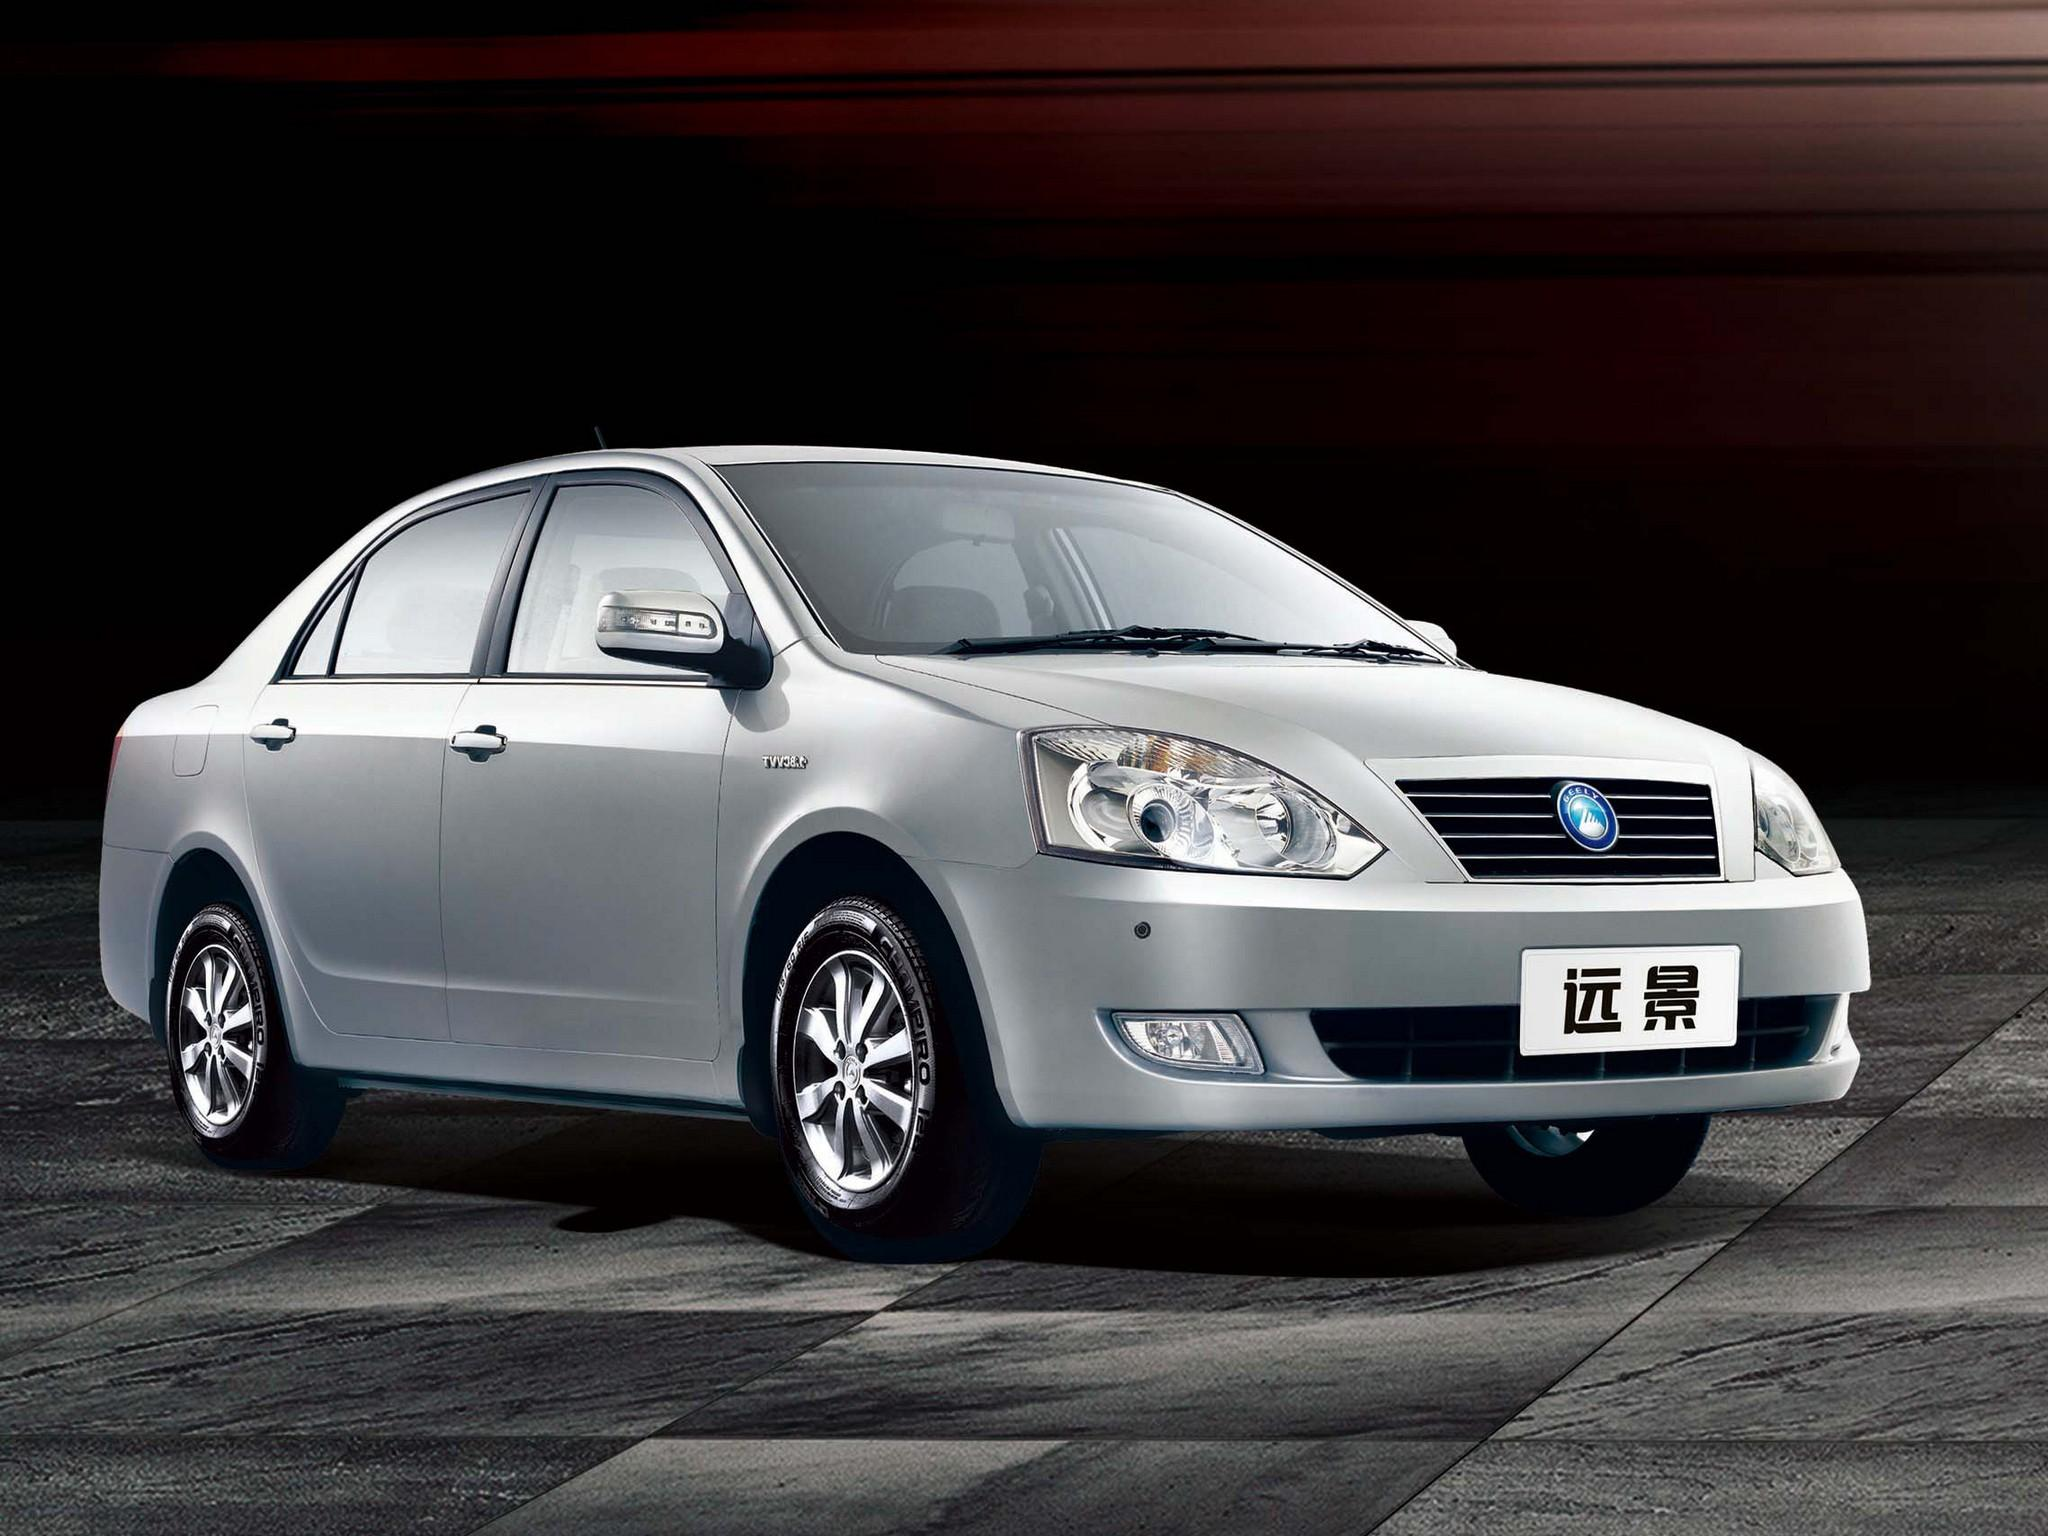 Geely Vision / FC picture #87983 | Geely photo gallery | CarsBase.com